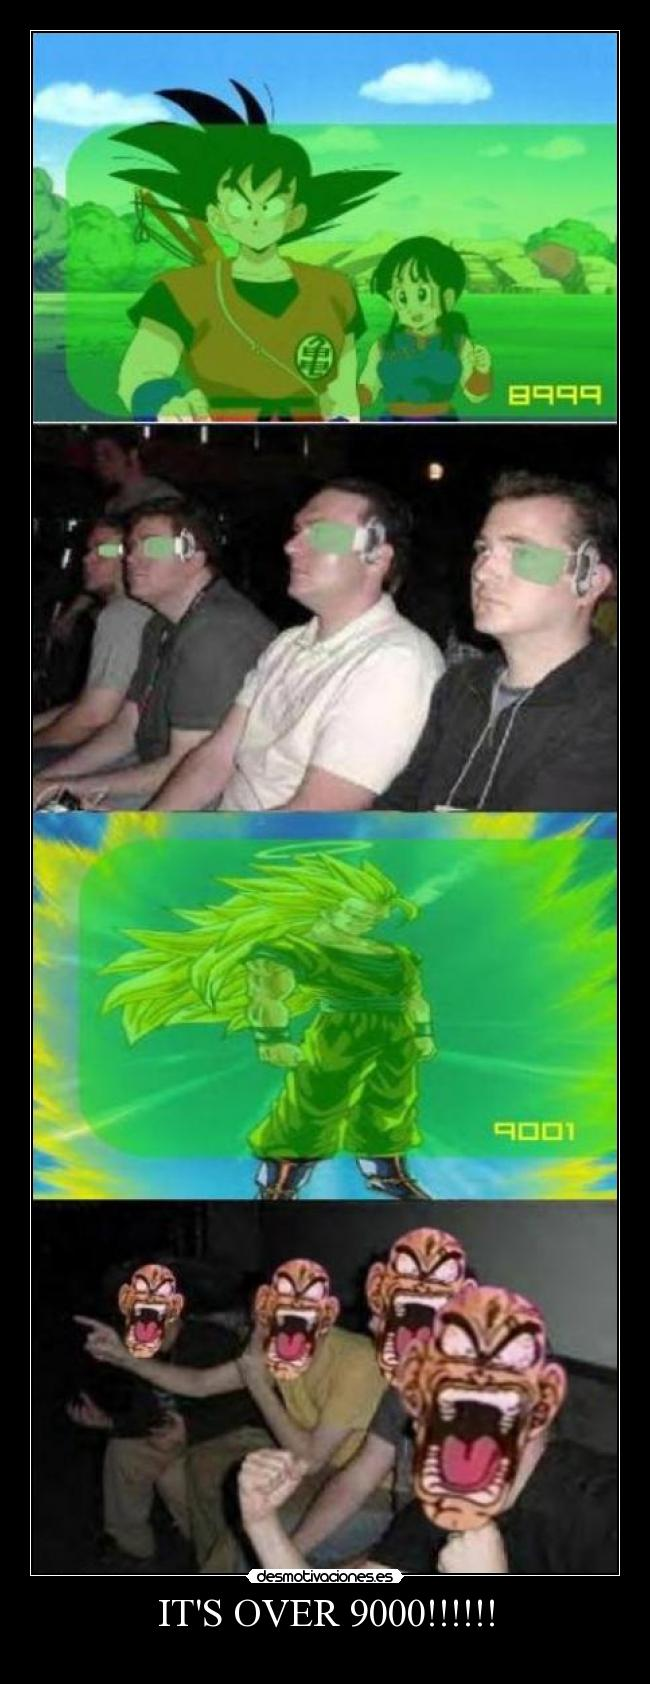 ITS OVER 9000!!!!!! -